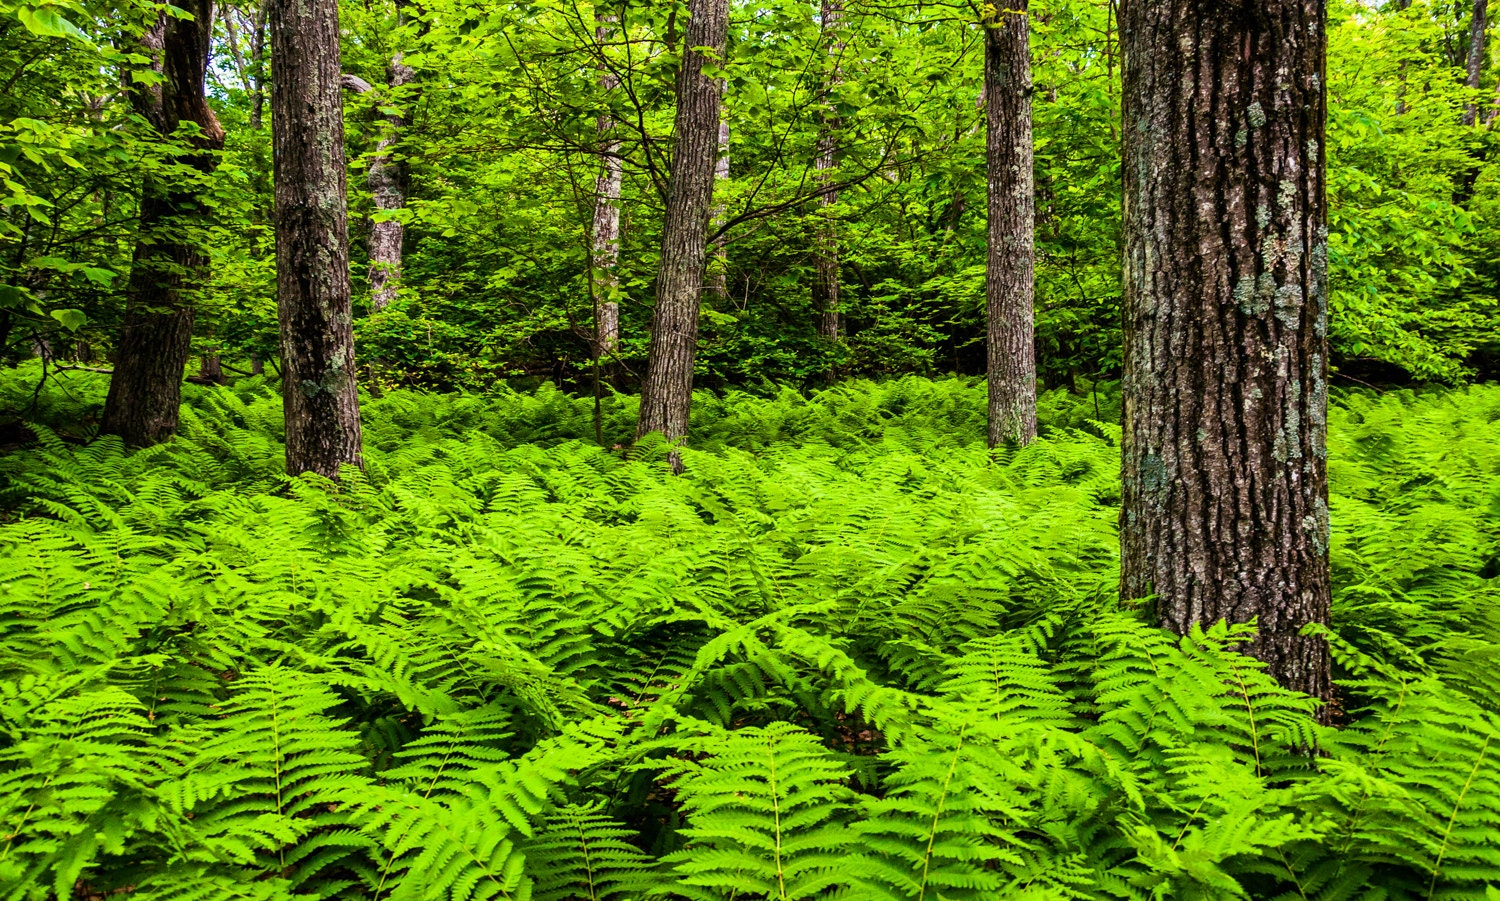 Ferns and trees in a lush forest, Shenandoah National Park, Virginia - Nature Photography Fine Art Print or Gallery Wrap Canvas Home Decor - AppalachianViews